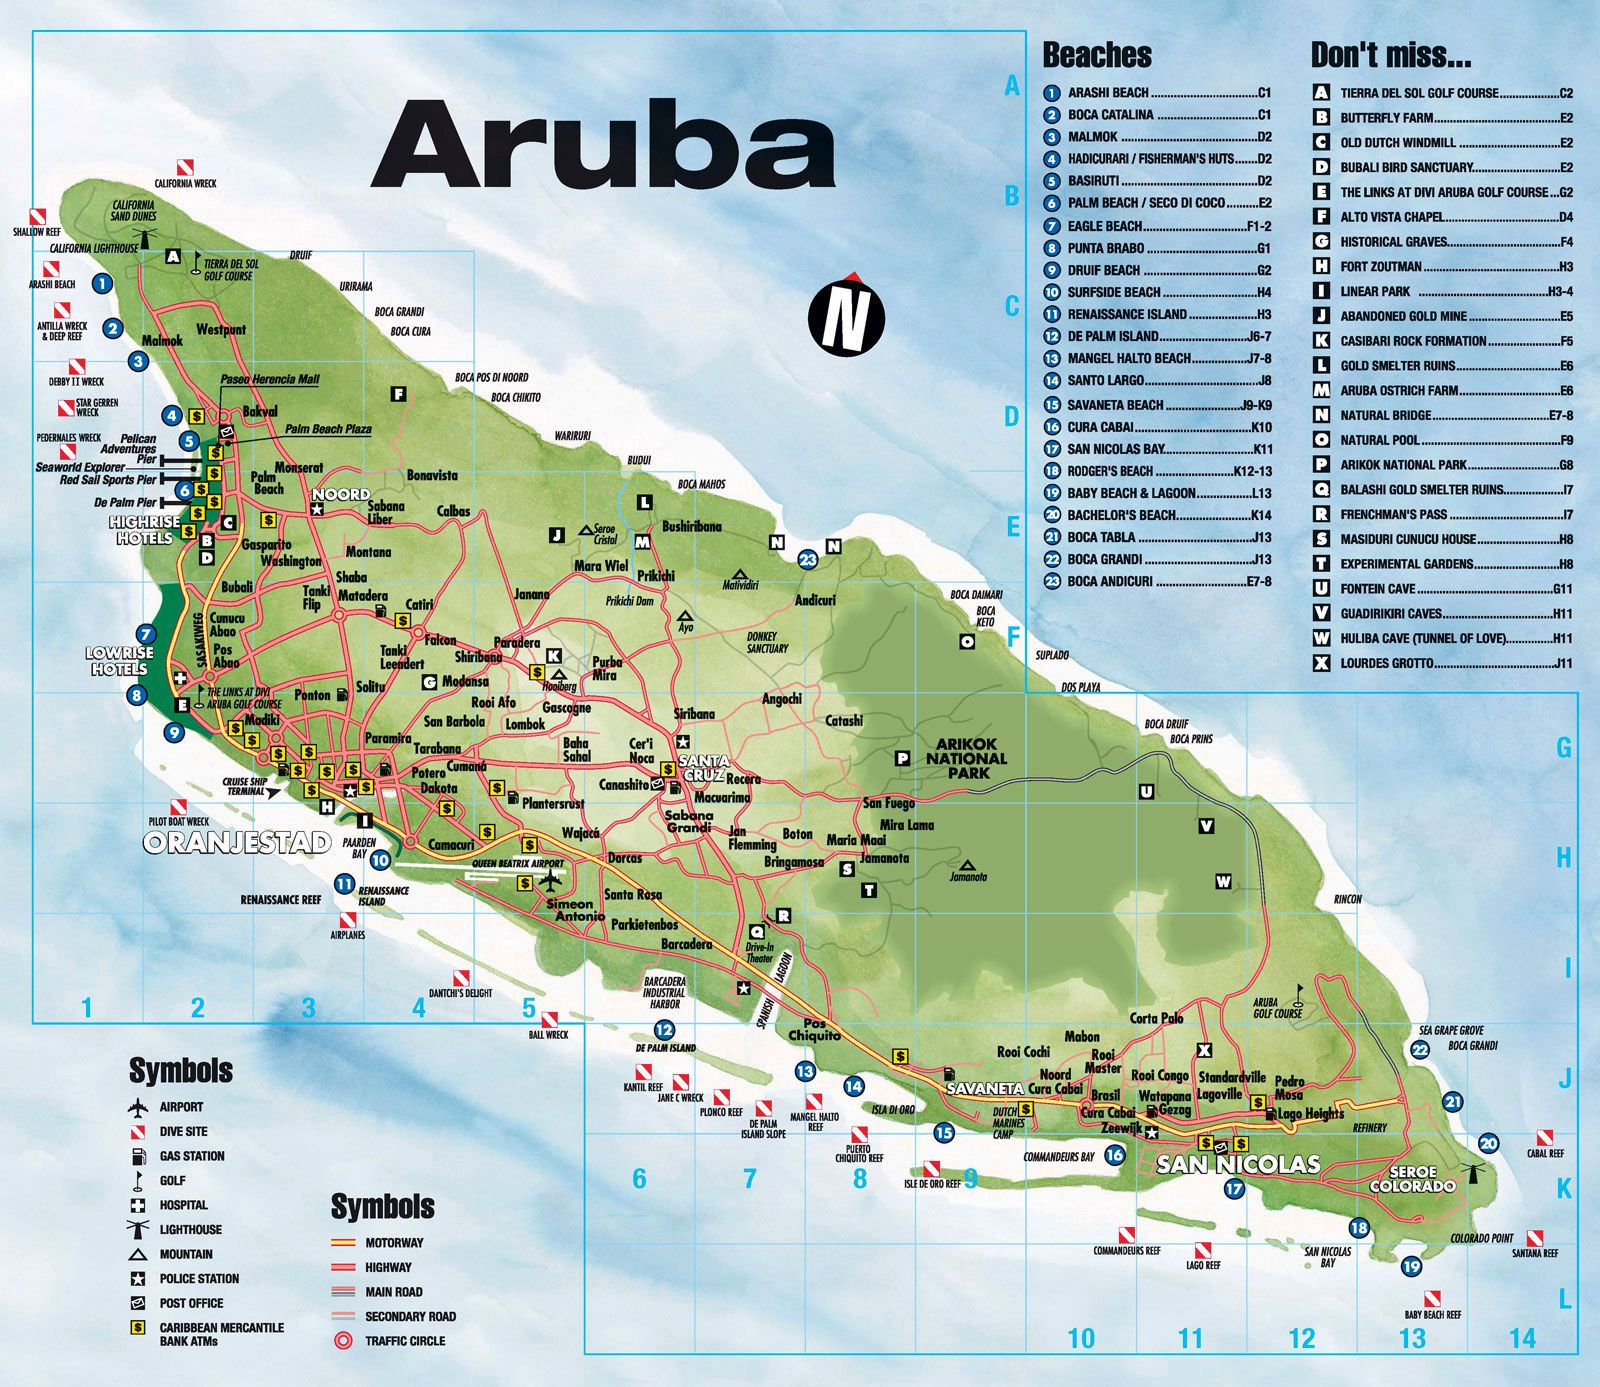 Image result for aruba's beaches map